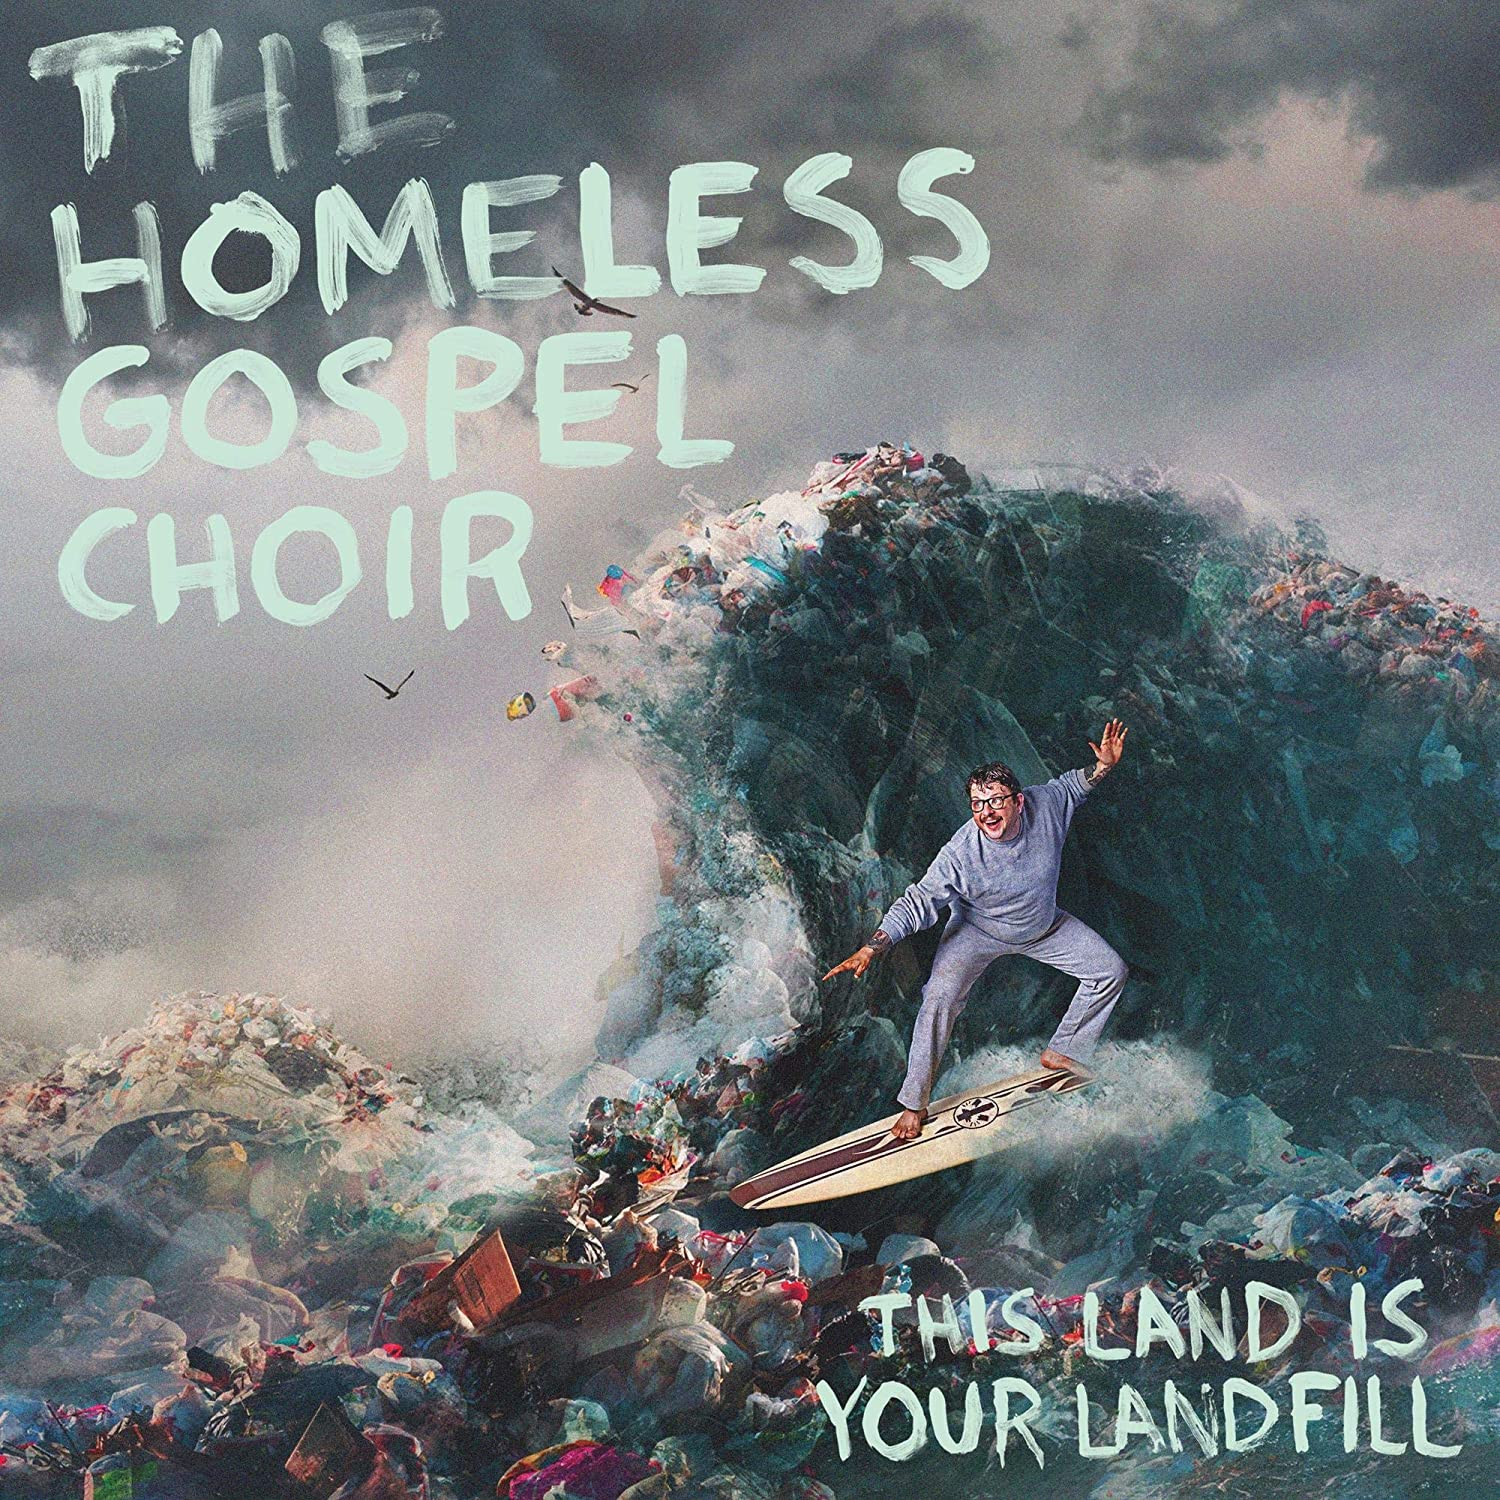 The Homeless Gospel Choir - This Land Is Your Landfill Albumcover